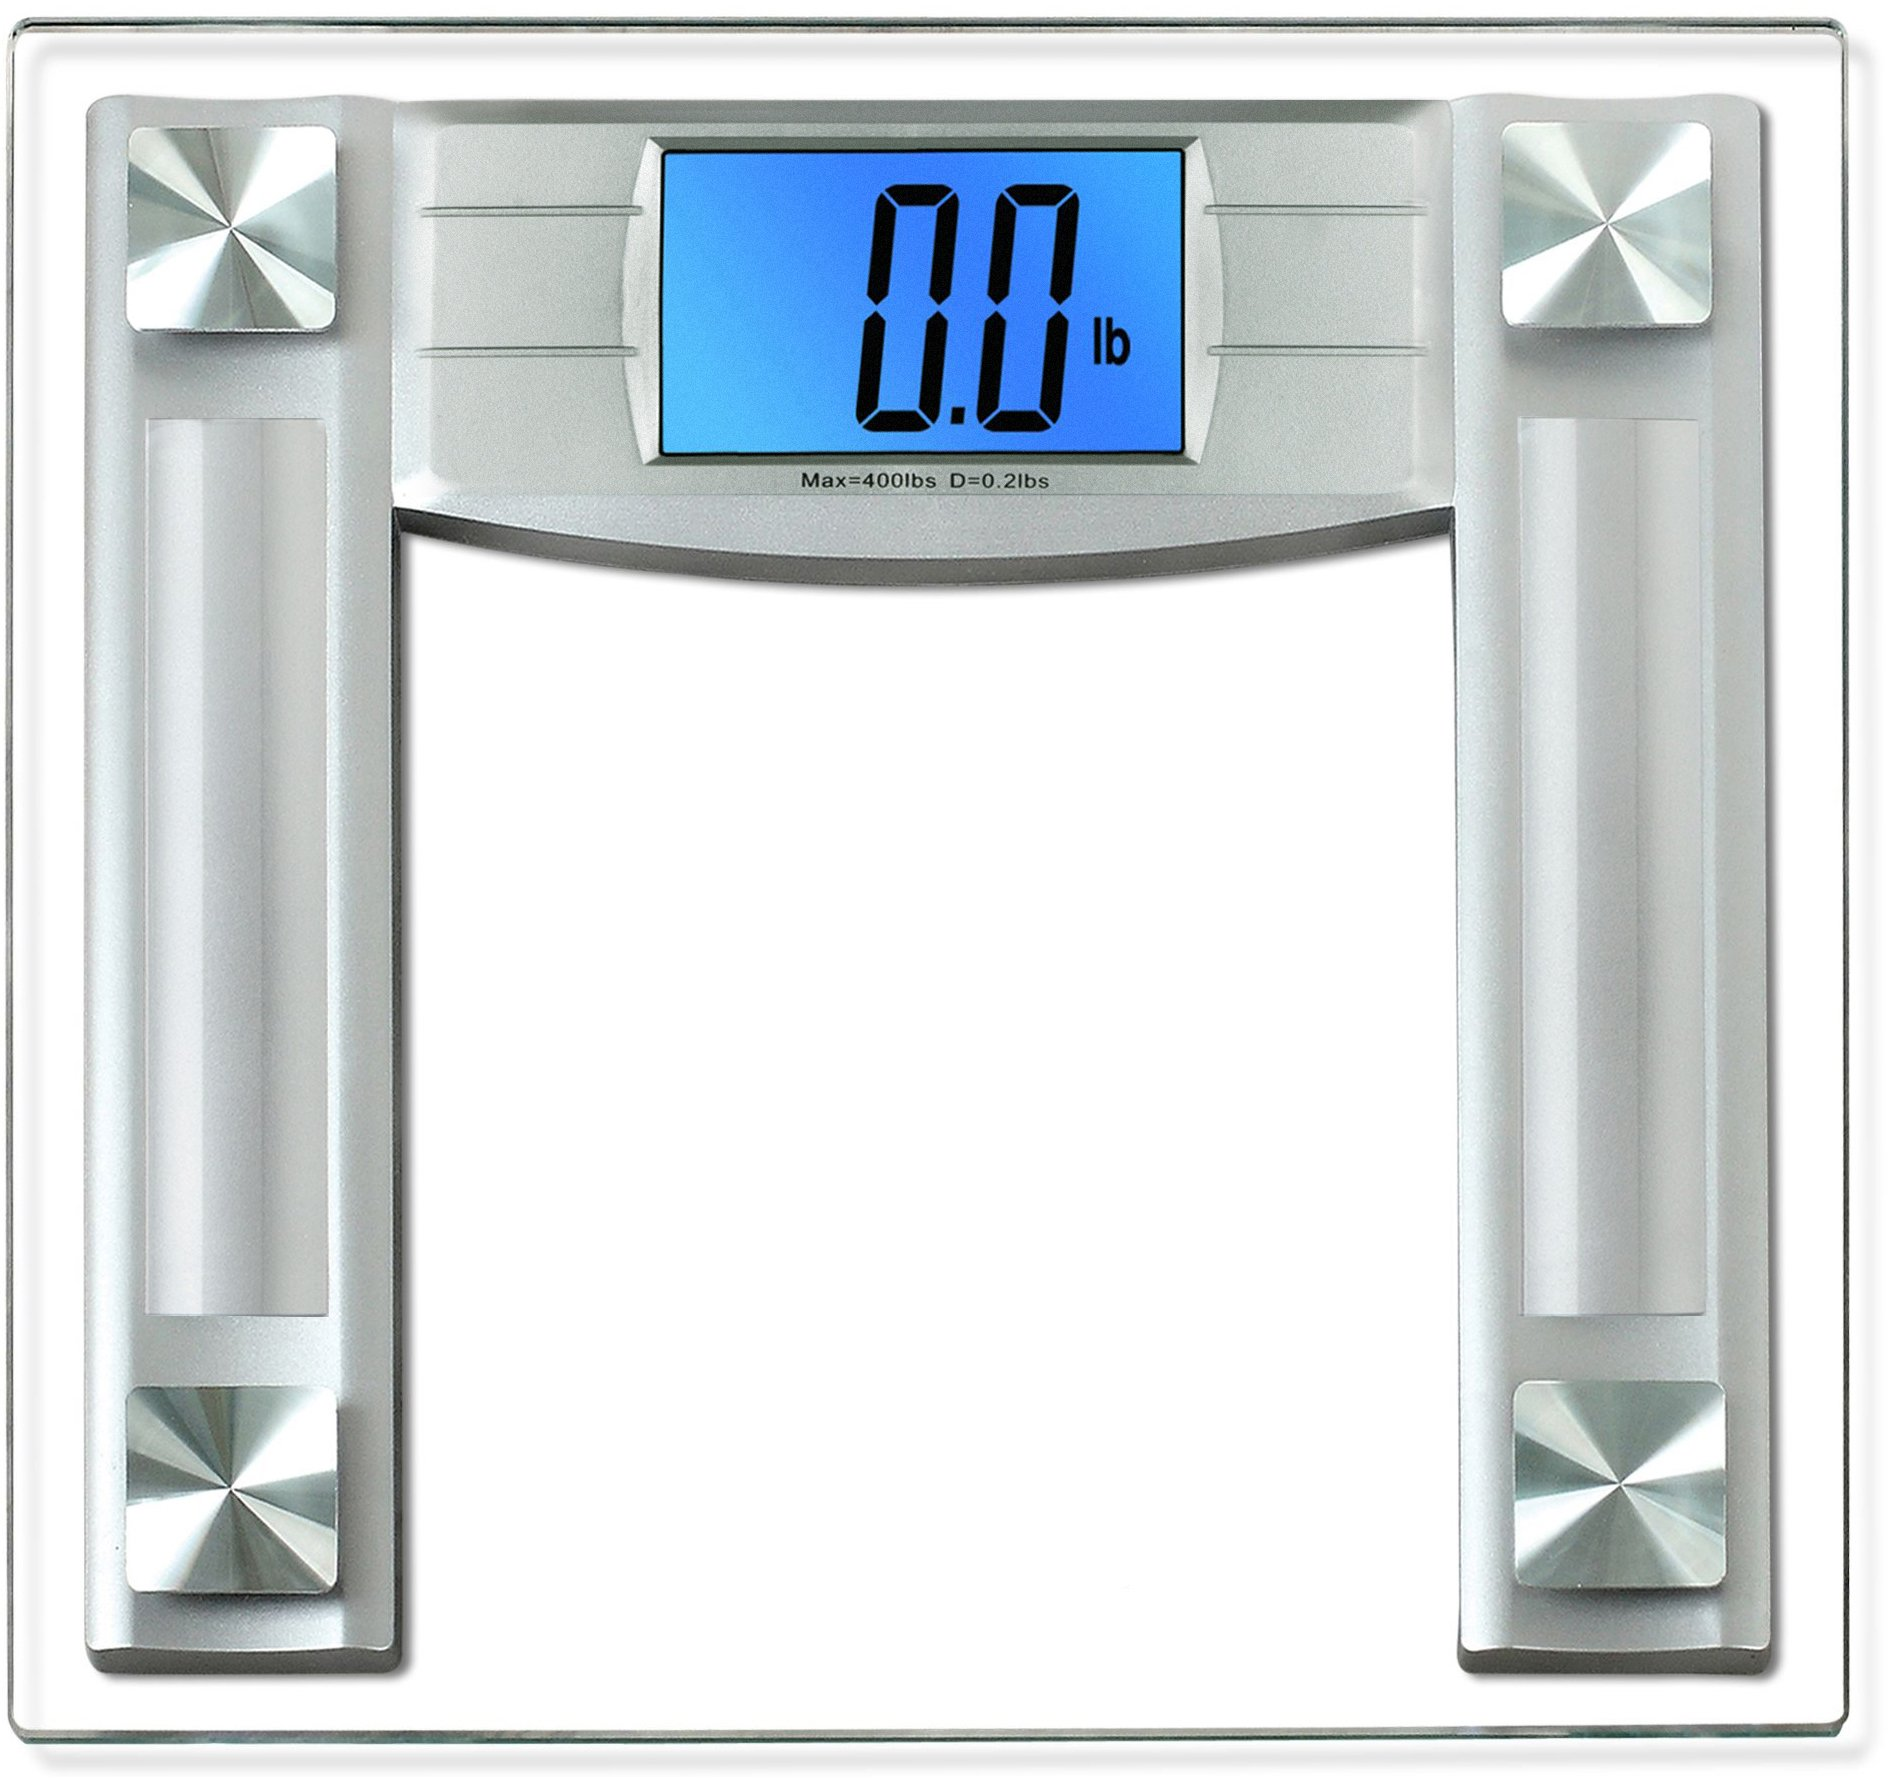 BalanceFrom Digital Body Weight Bathroom Scale with Step-On Technology and Backlight Display, 400 Pounds, Silver